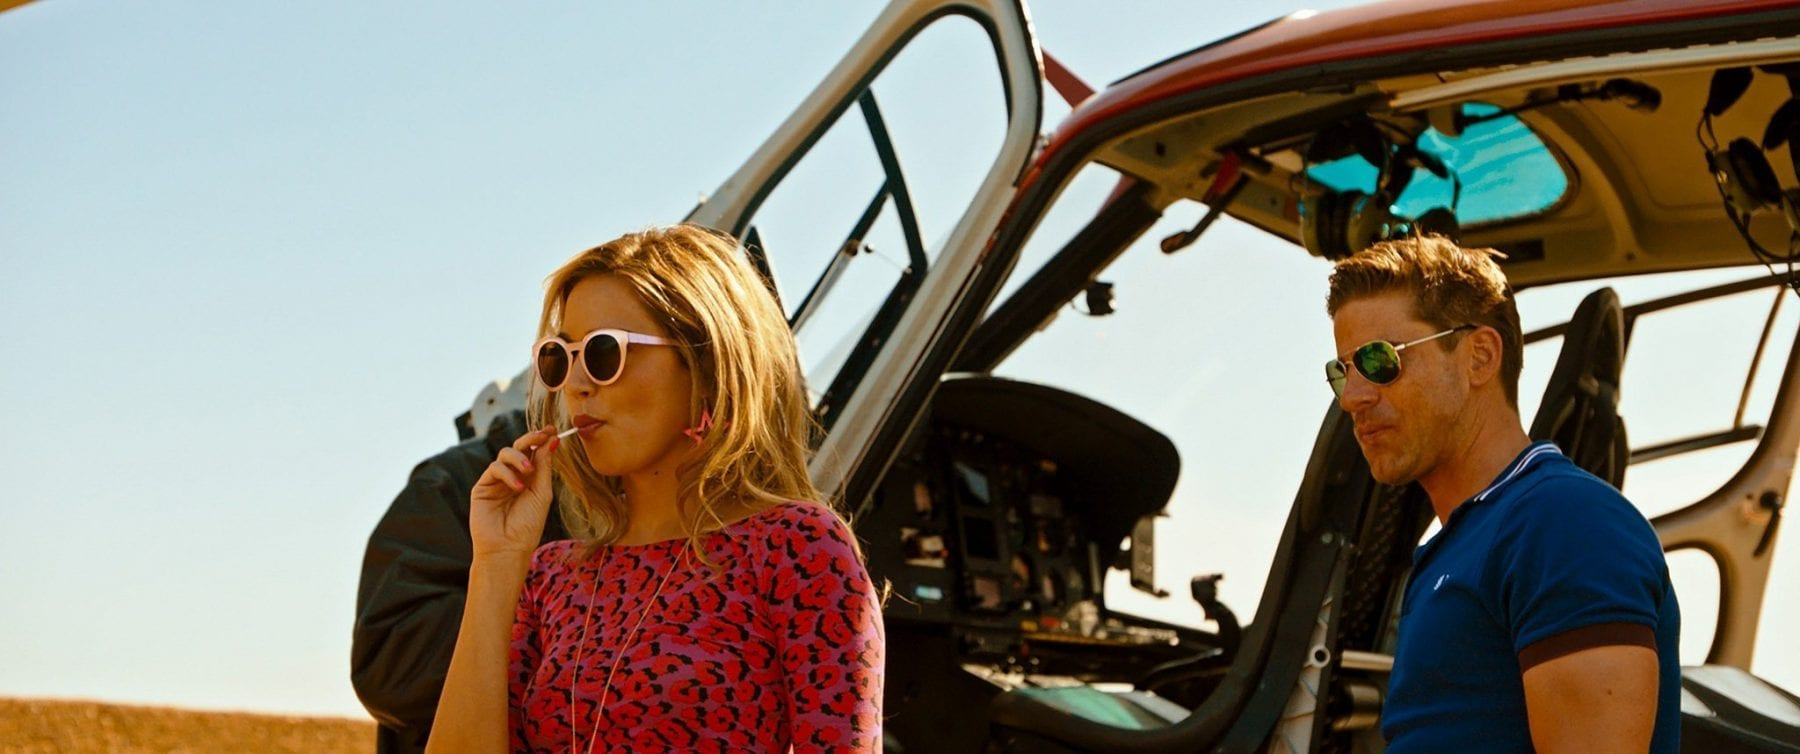 Our female lead steps out of a helicopter wearing shades and sucking a lollipop